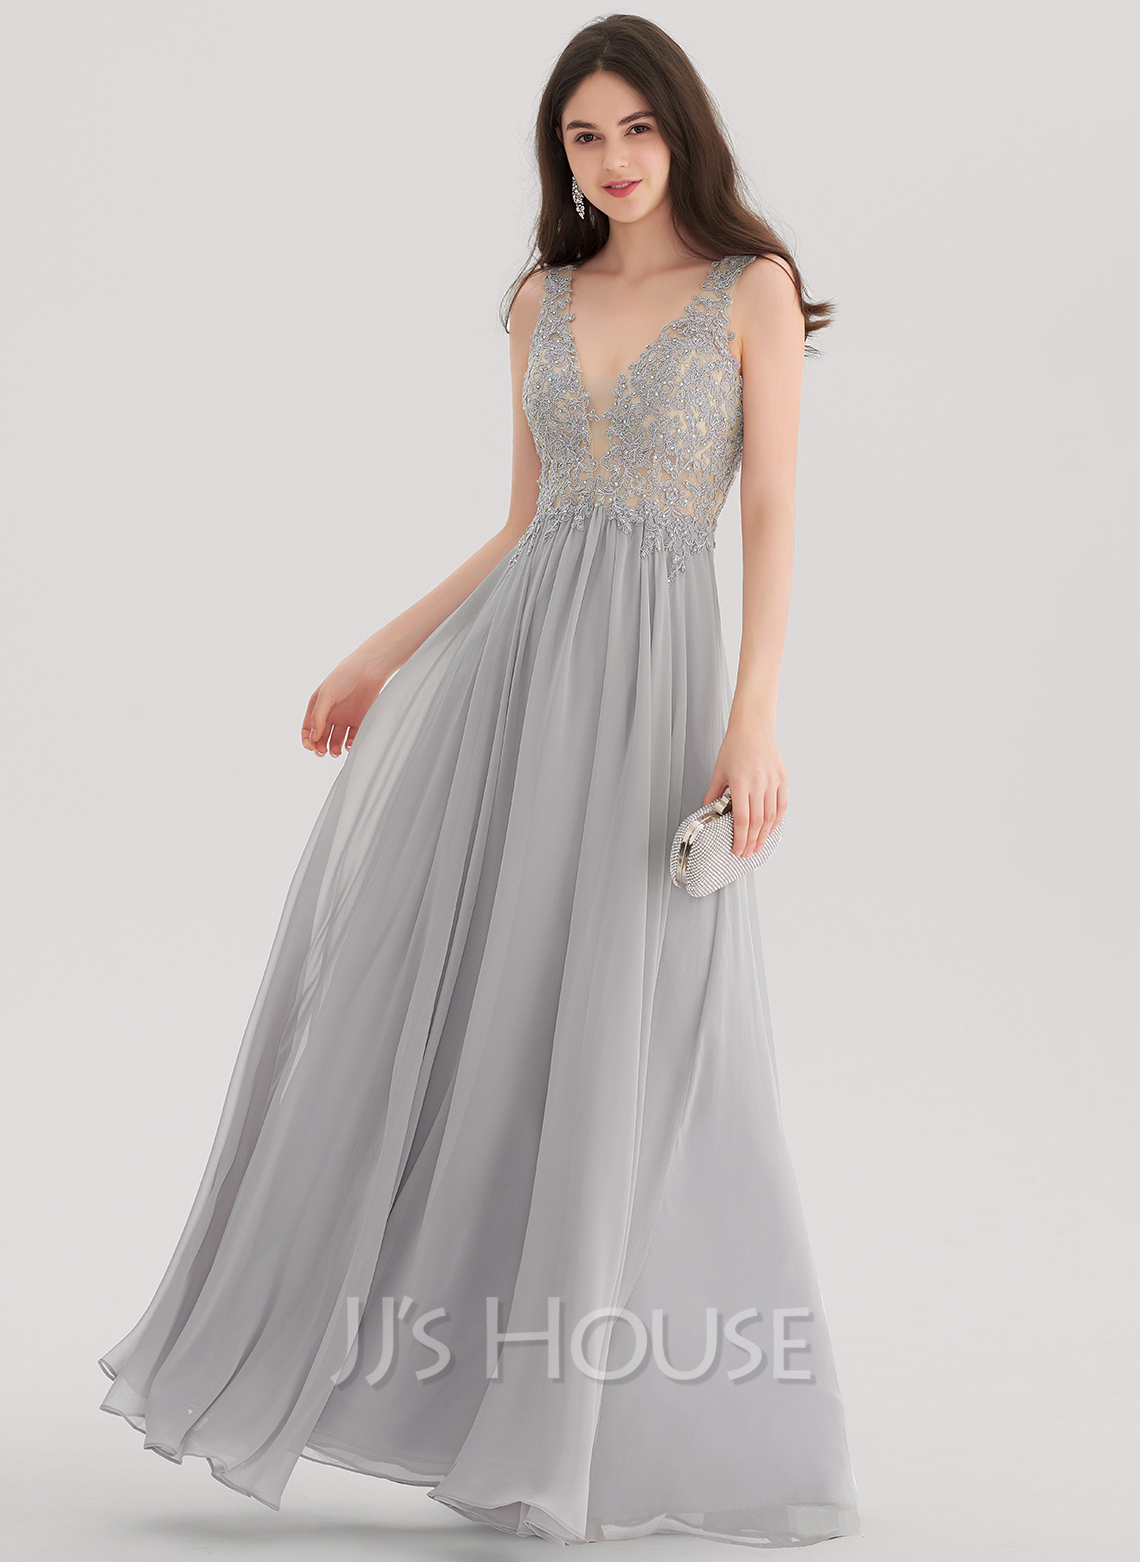 Buy Affordable & Cheap Prom Dresses | JJ\'sHouse